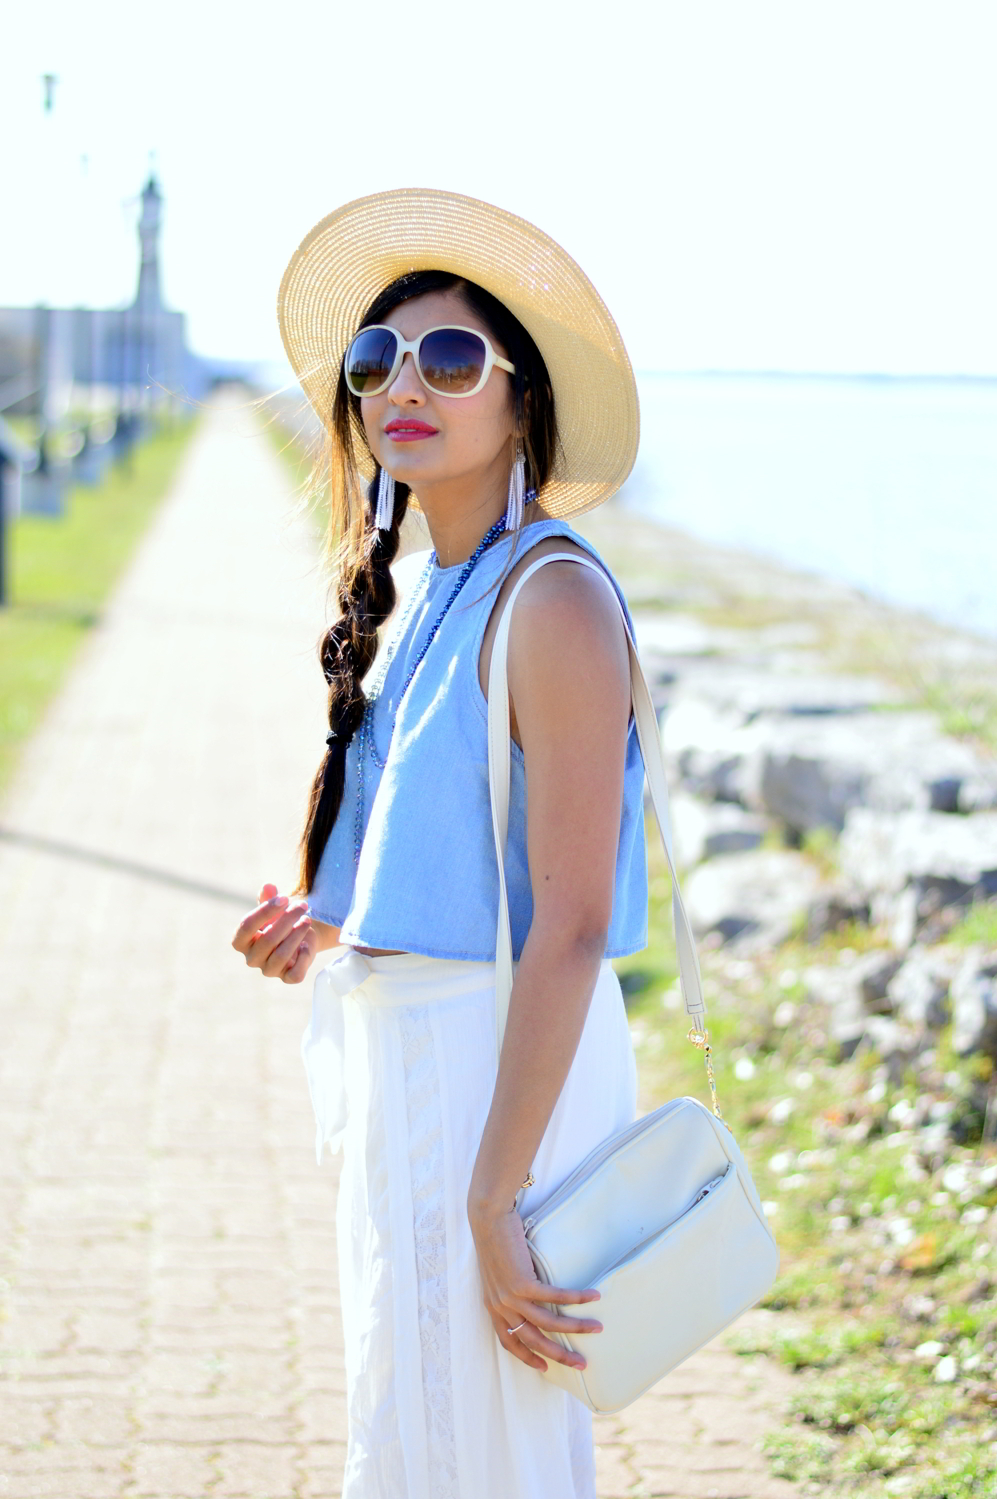 denim-crop-top-white-beach-style-blogger-outfit 5